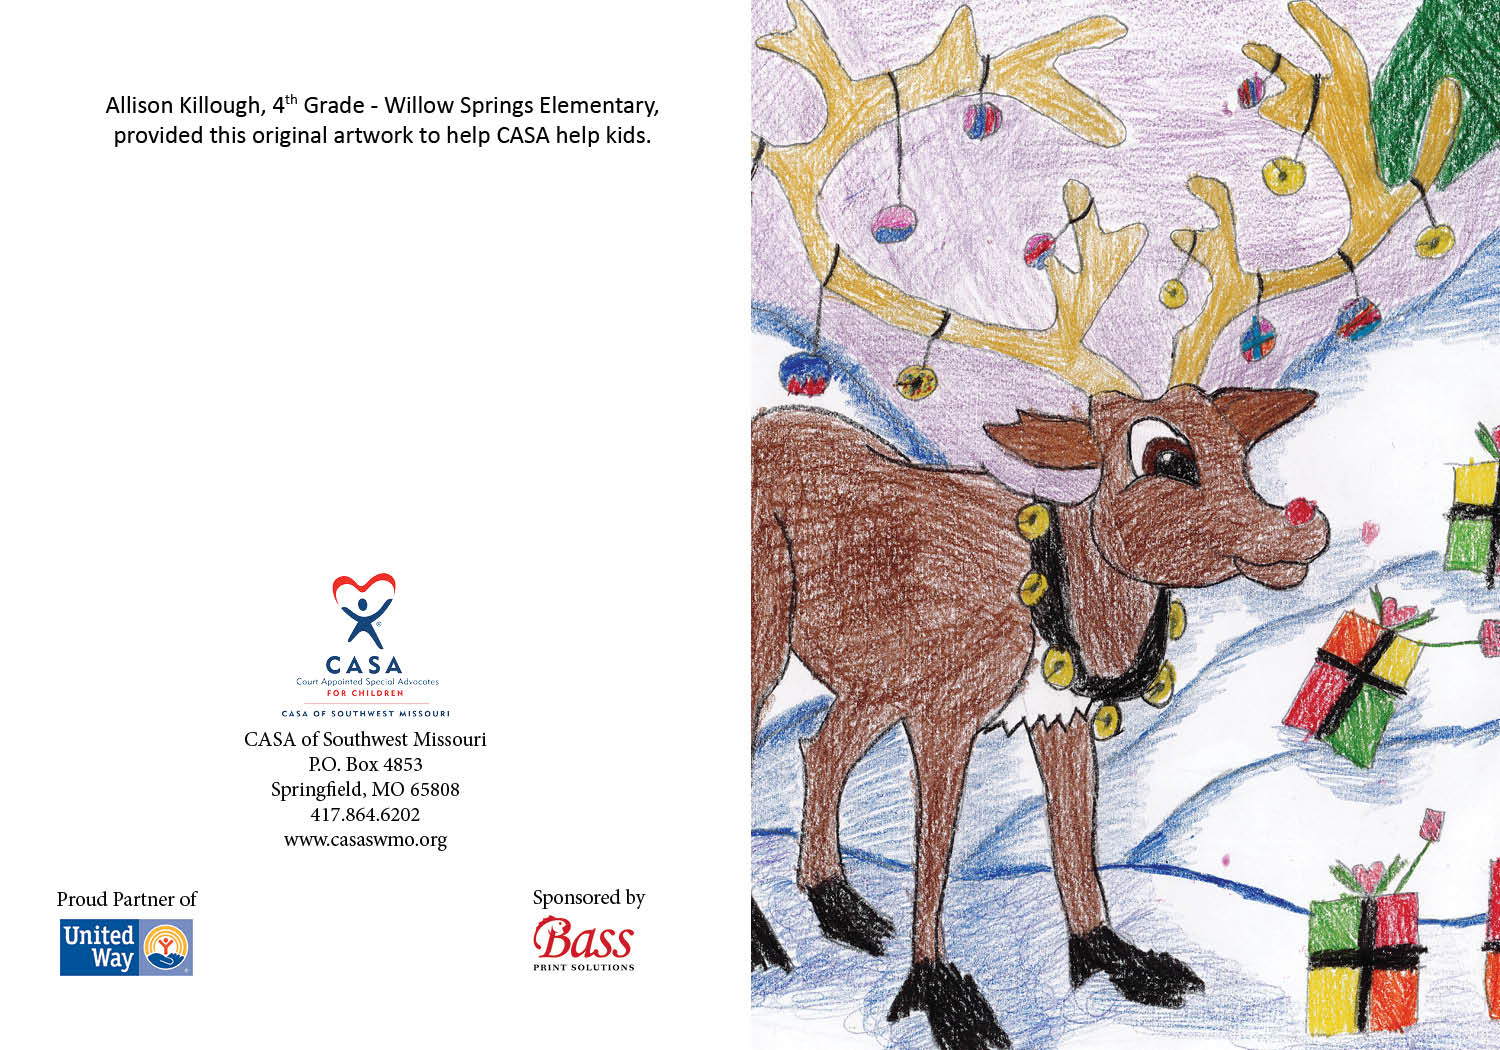 01 Deer with Presents - Allison Killough - 4th grade - Willow Springs Elementary